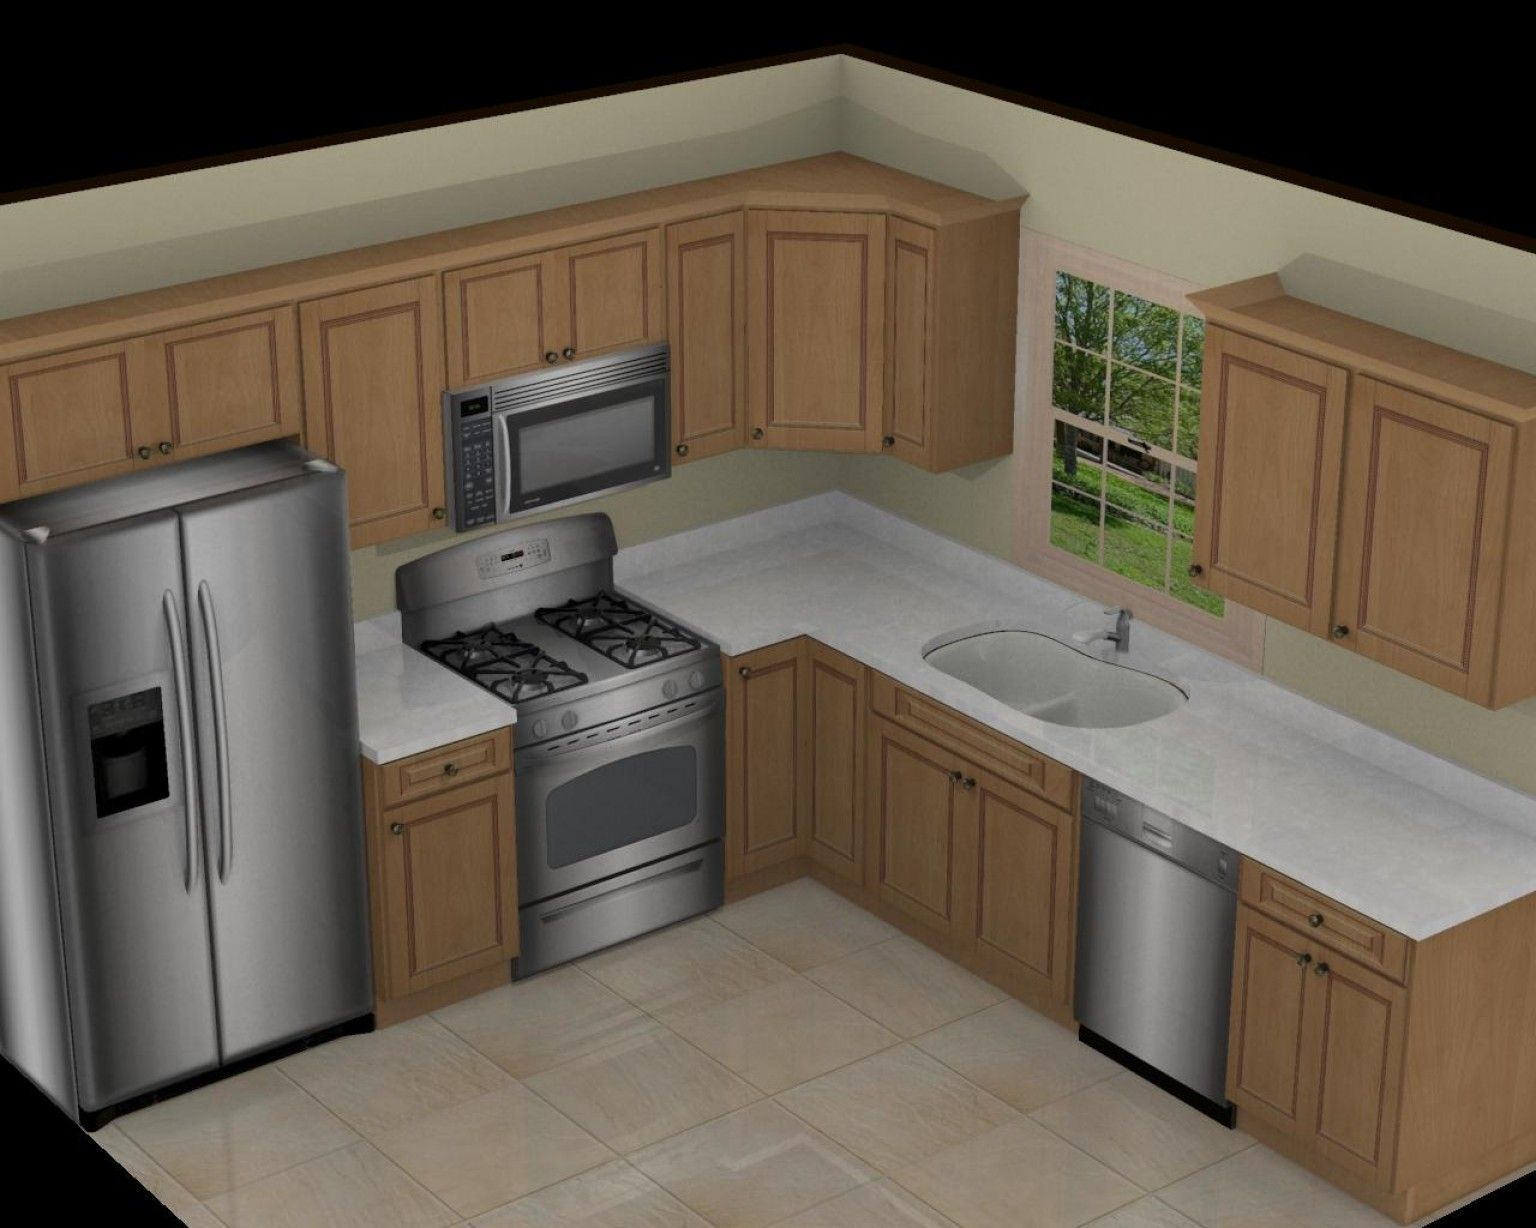 14 Astonishing Kitchen Remodeling Why You Should Also Change Your Decor Ideas In 2020 Small Kitchen Design Layout Kitchen Cabinet Layout Kitchen Remodel Design